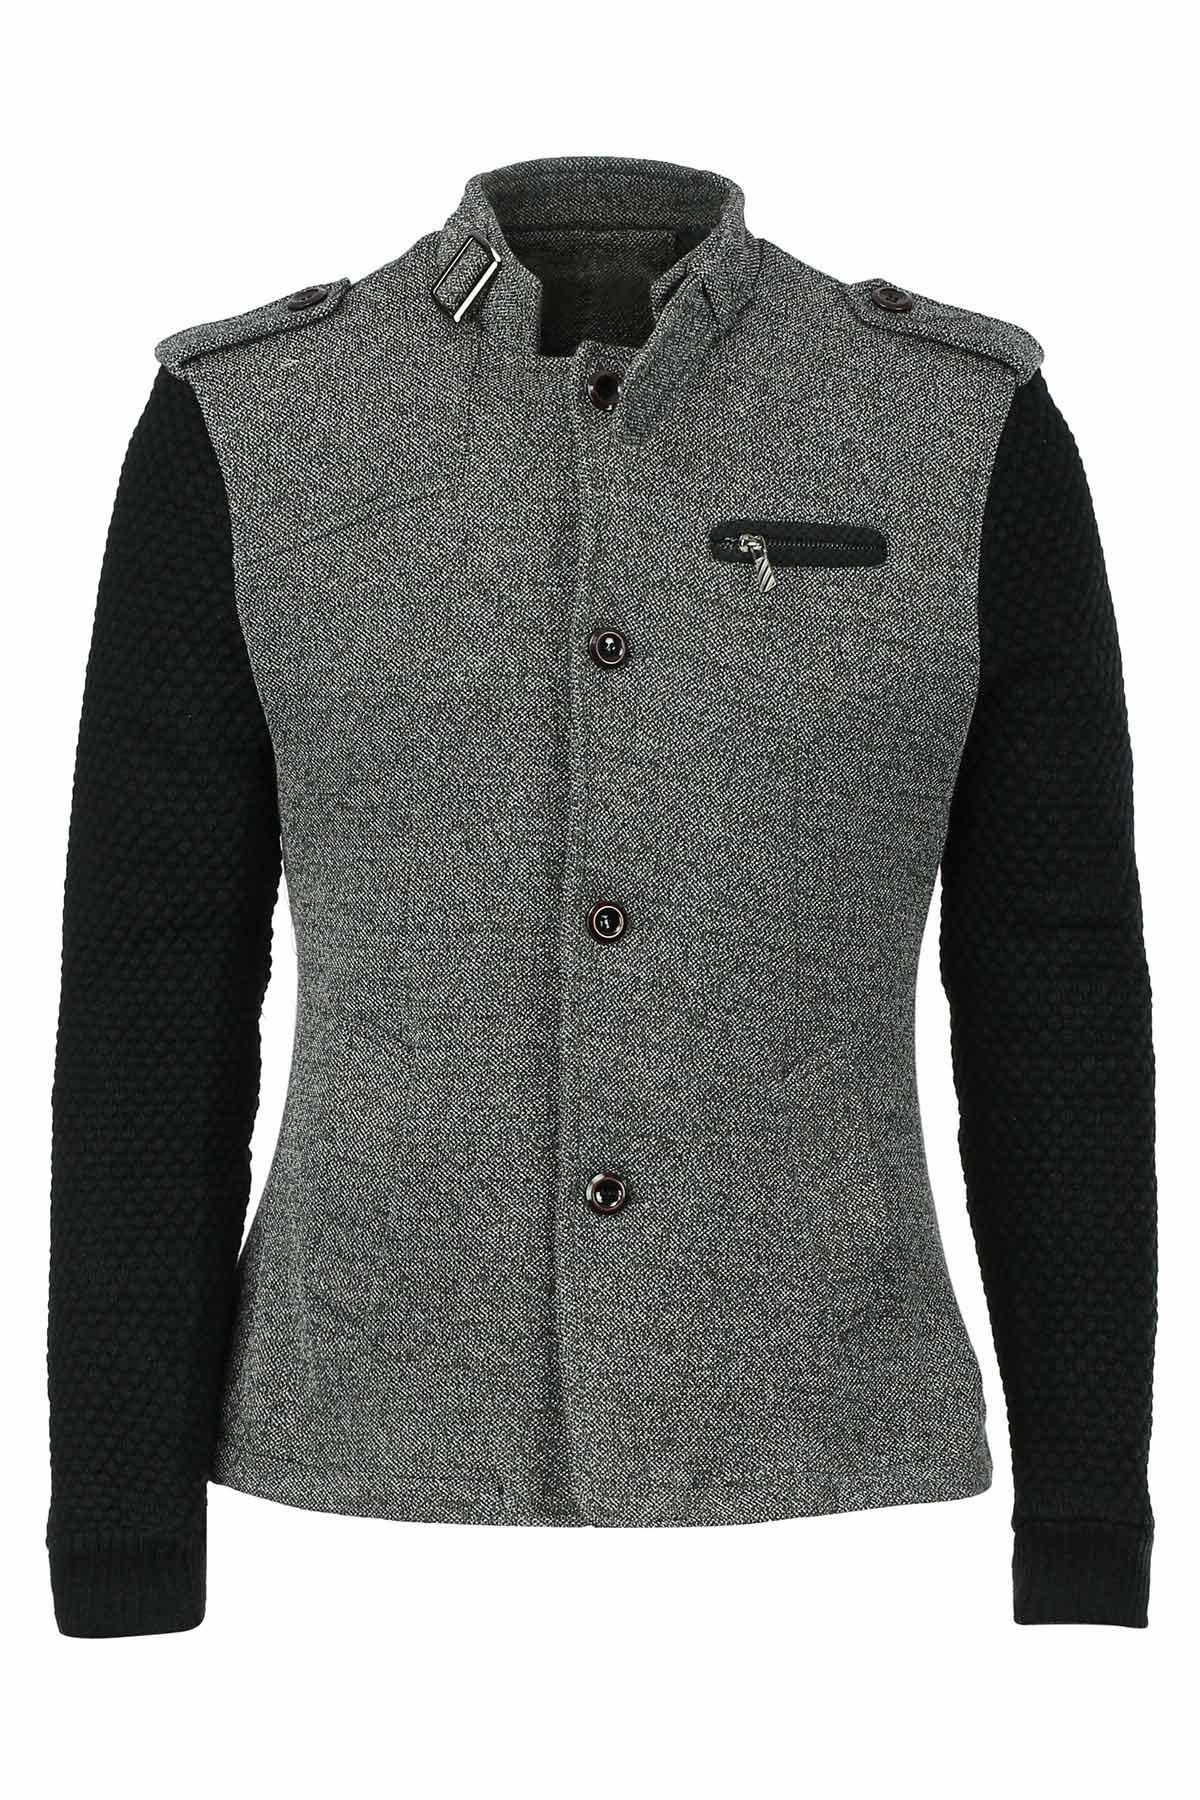 Woolen Yarn Full Sleeves Spliced Zipper and Epaulet Design Stand Collar Men's Slimming Jacket - M GRAY